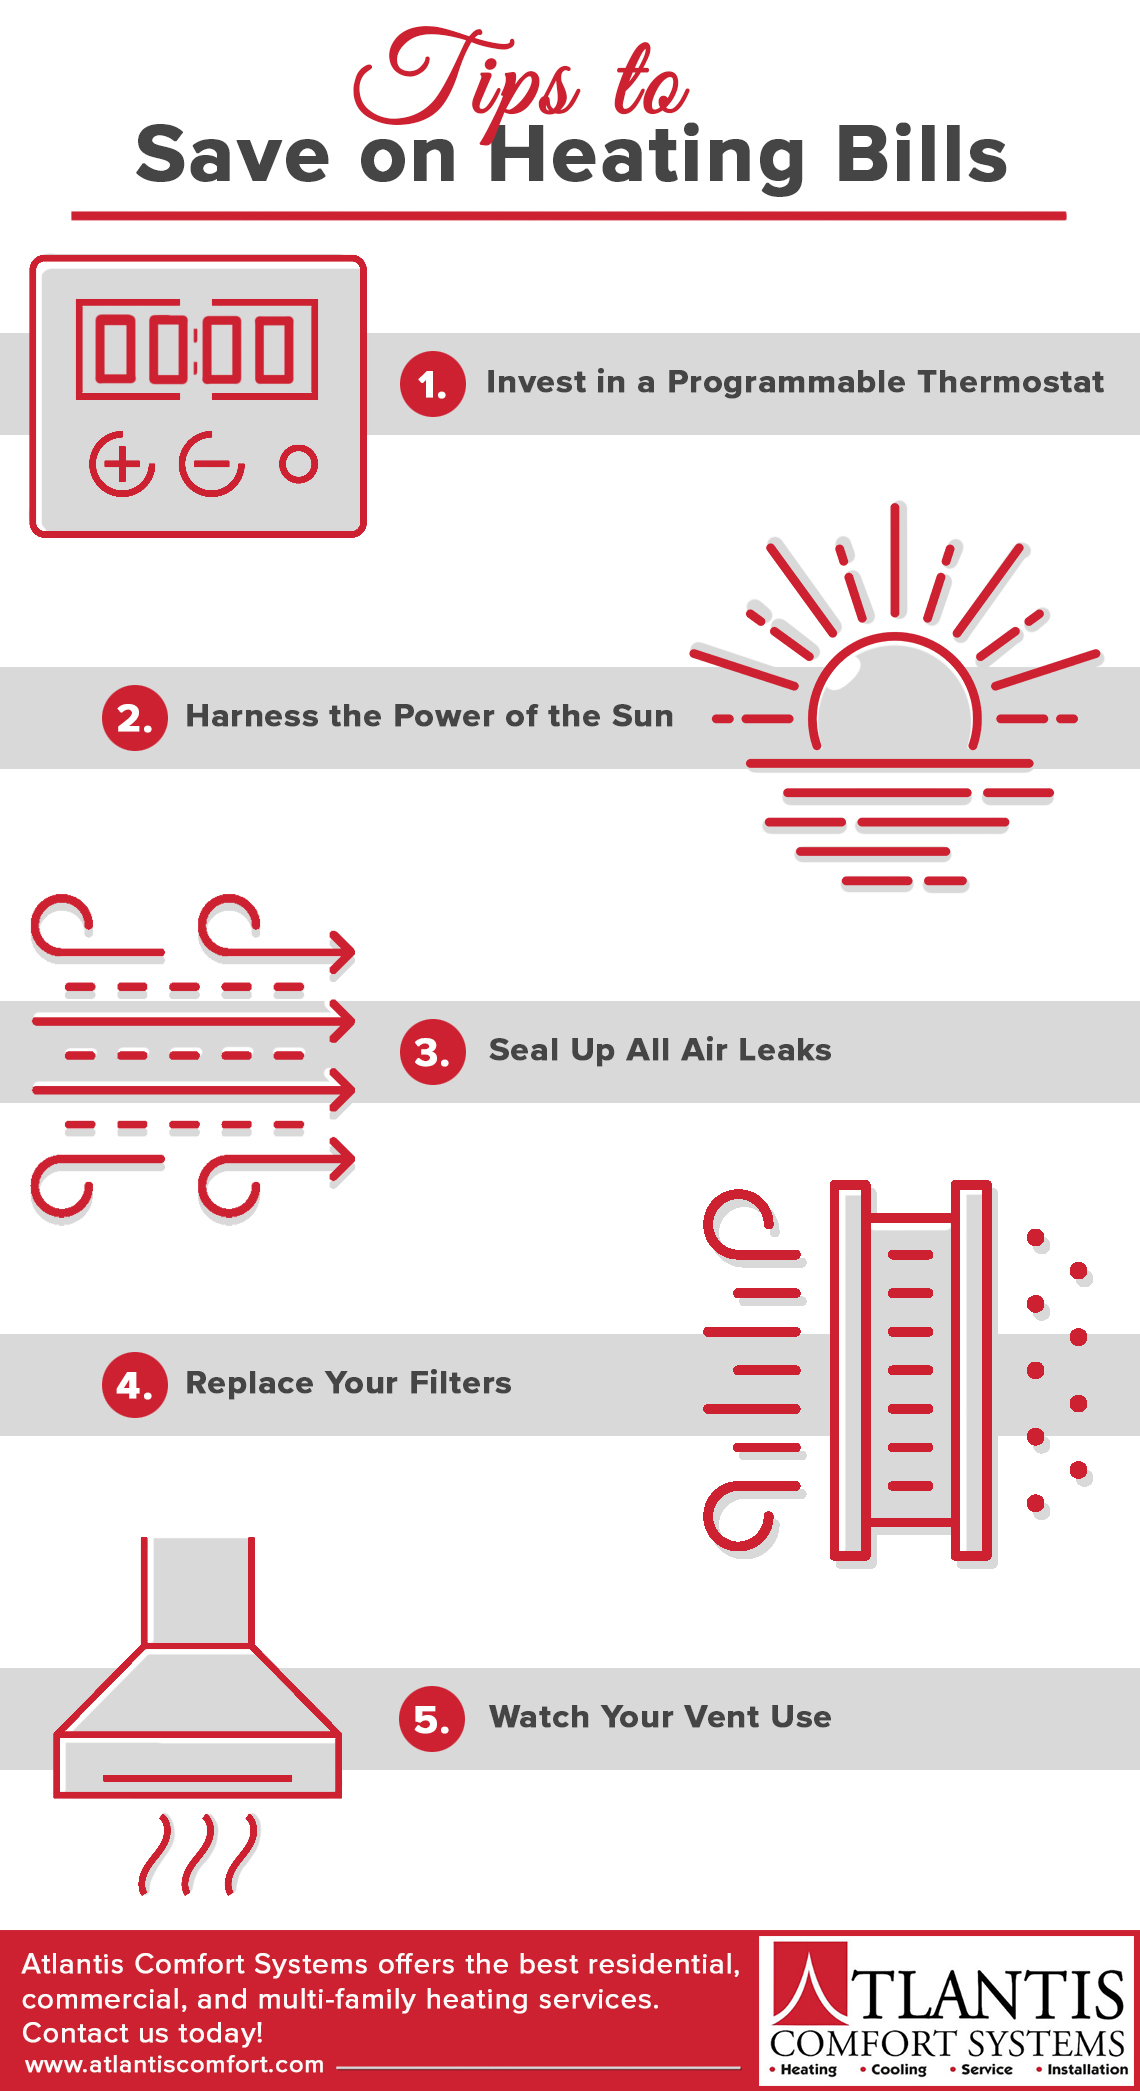 Tips to Save on Heating Bills.jpg